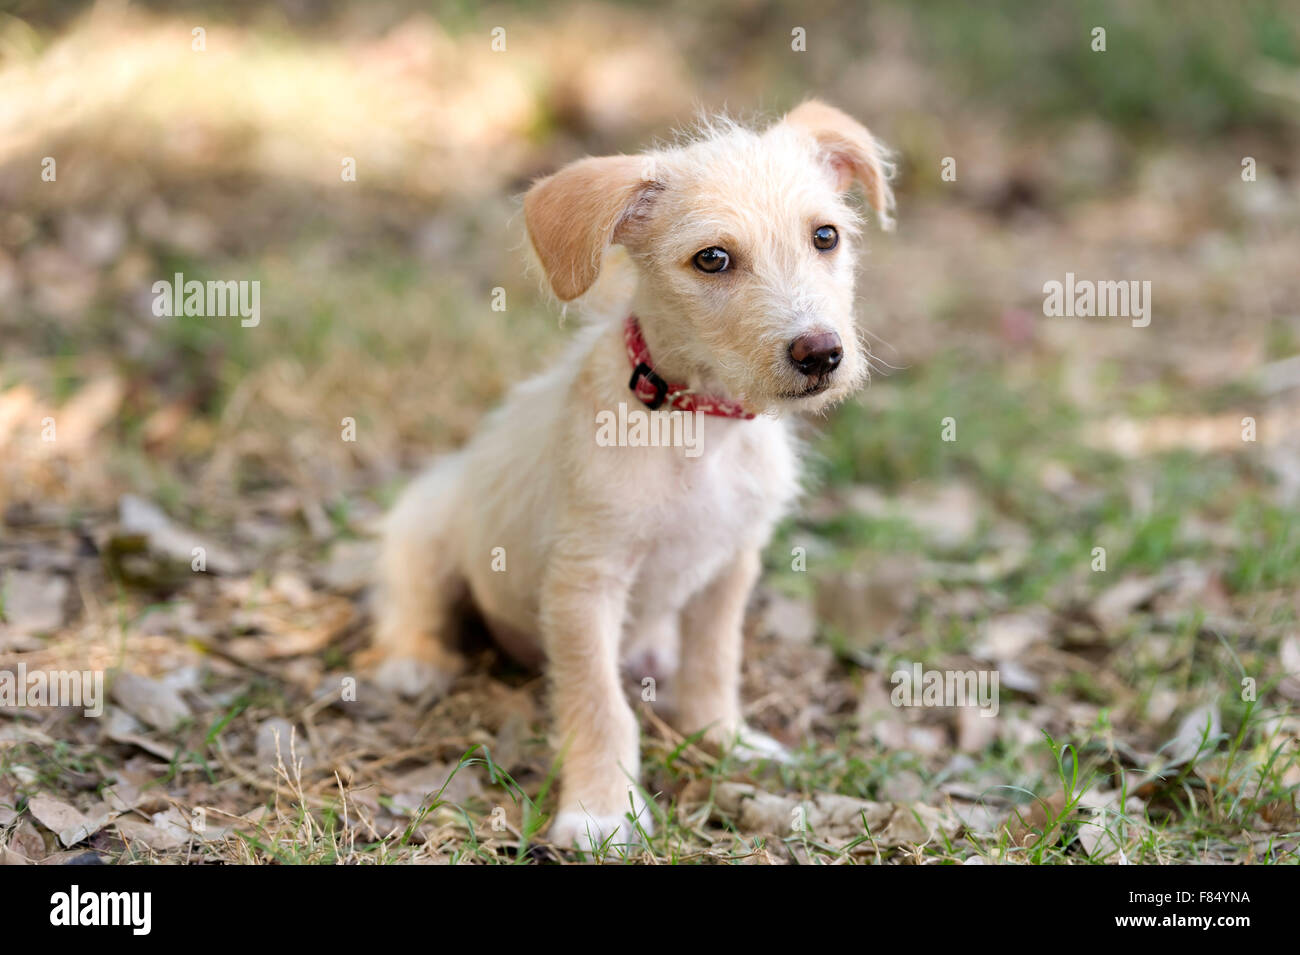 Cute puppy dog is a very cute beige puppy looking as adorable as a